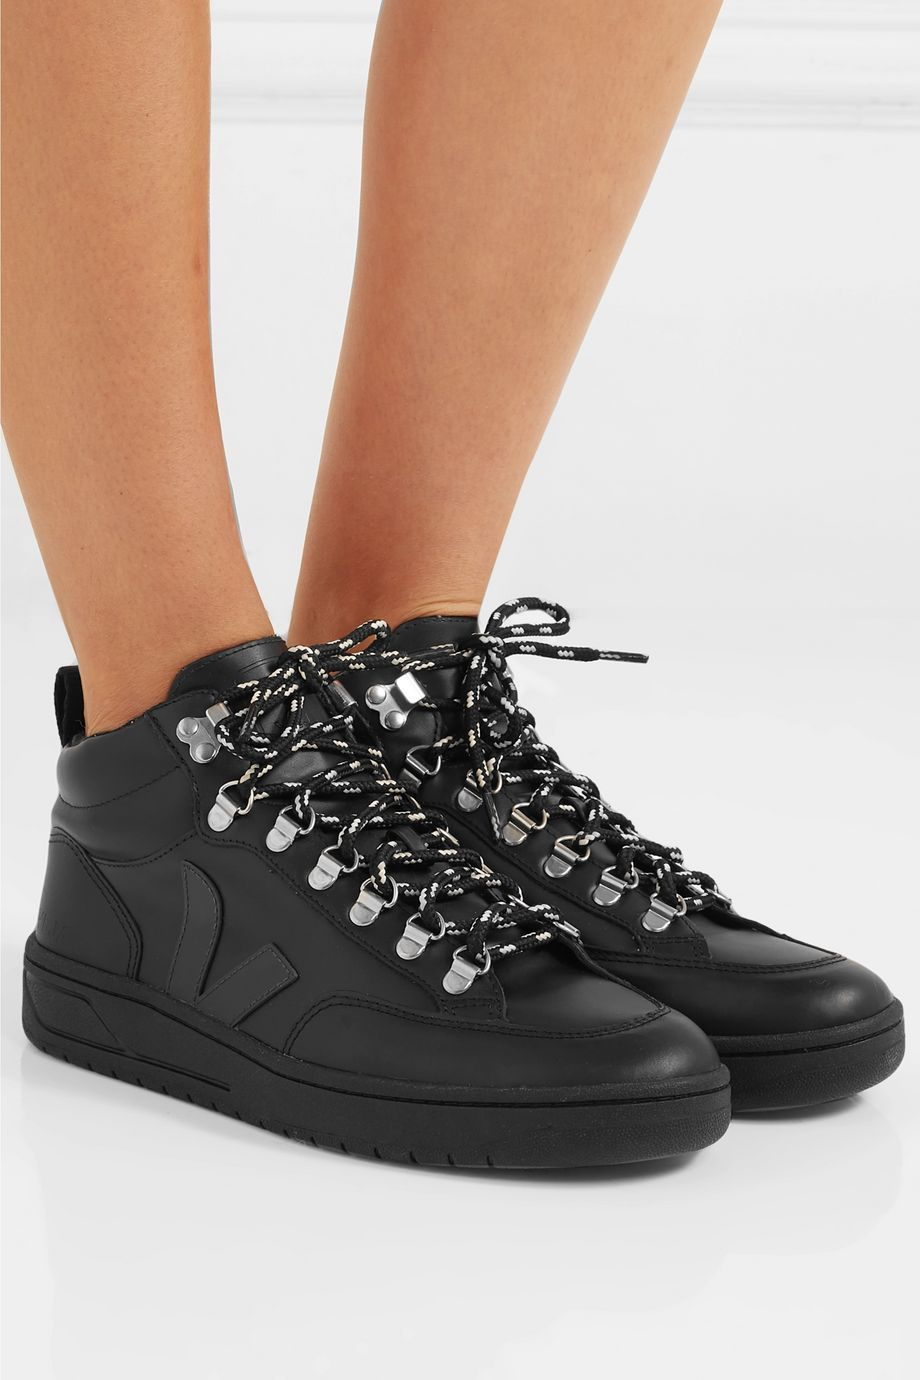 Veja + NET SUSTAIN Roraima leather high-top sneakers